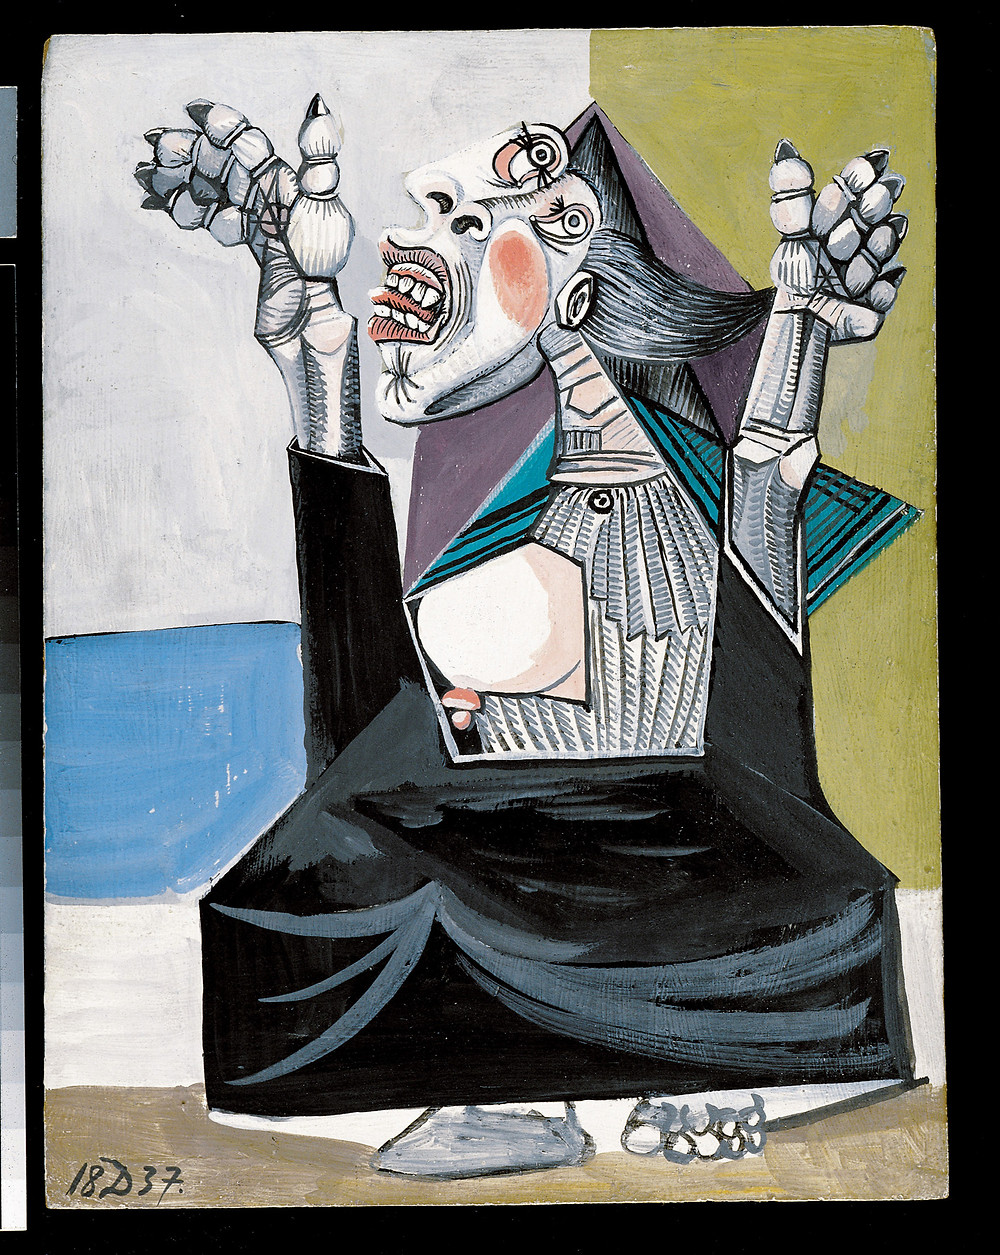 Pablo Picasso, The Suppliant, 1937